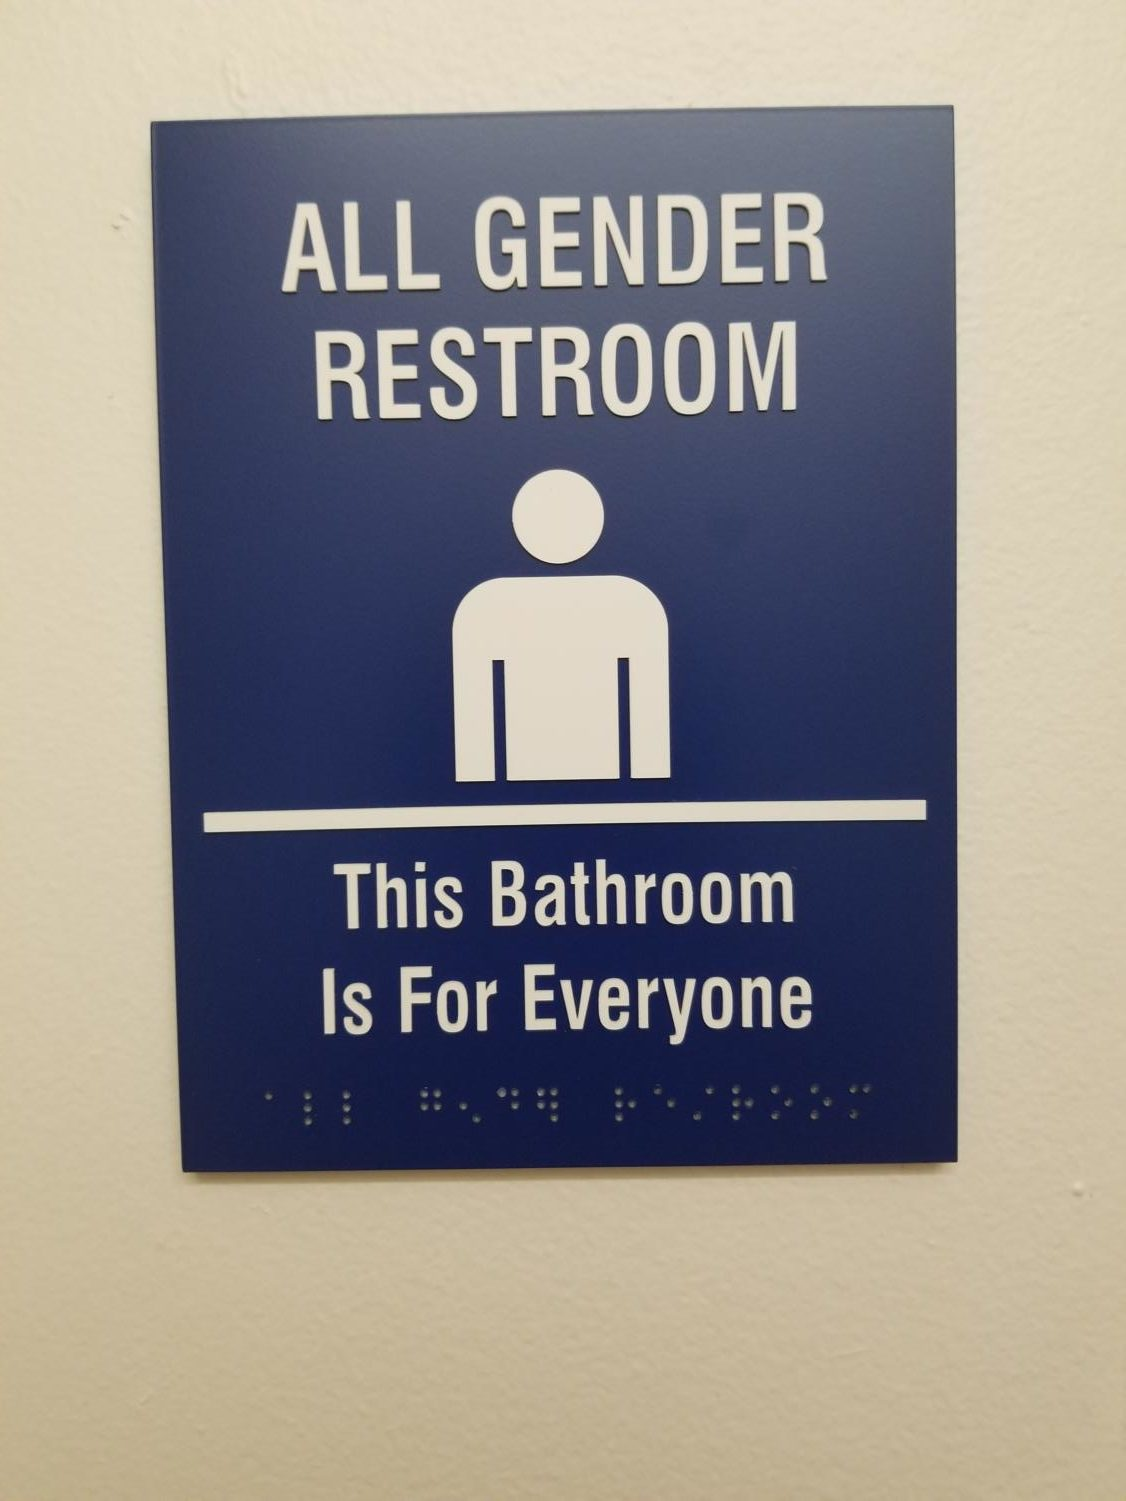 Pace students are mixed on the topic of all-gender bathrooms in residence halls.